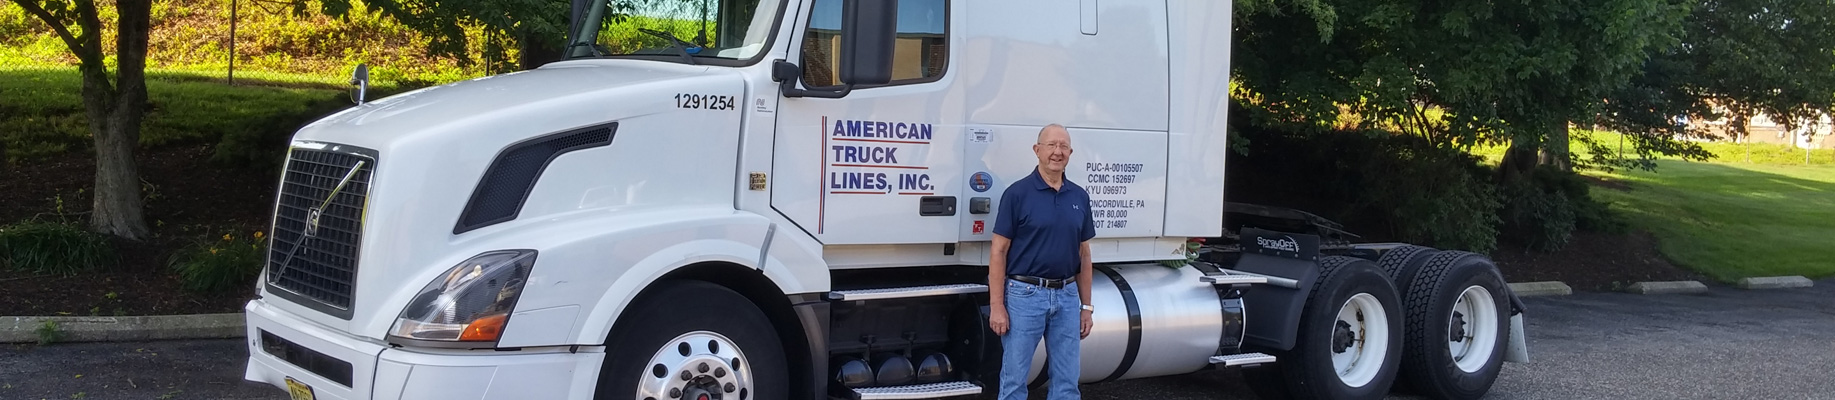 American Truck Lines